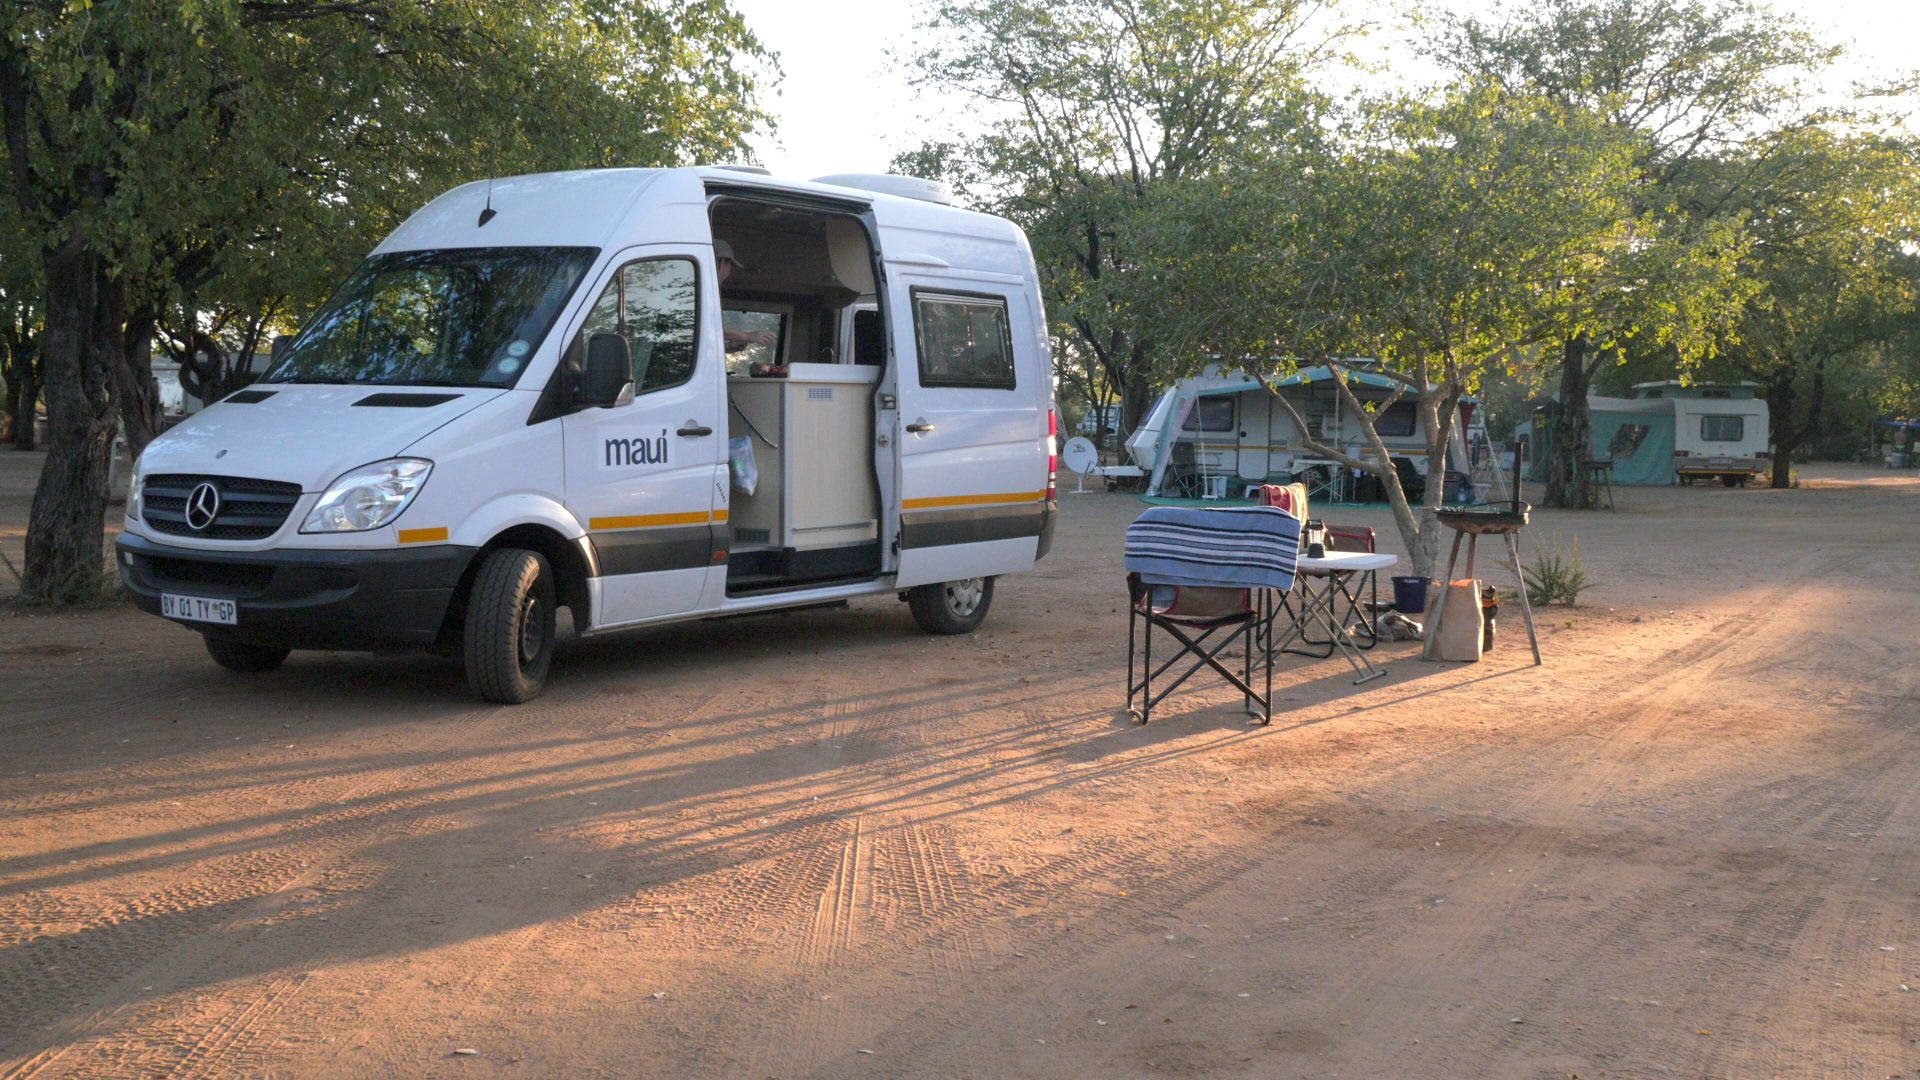 Shingwedzi camp site